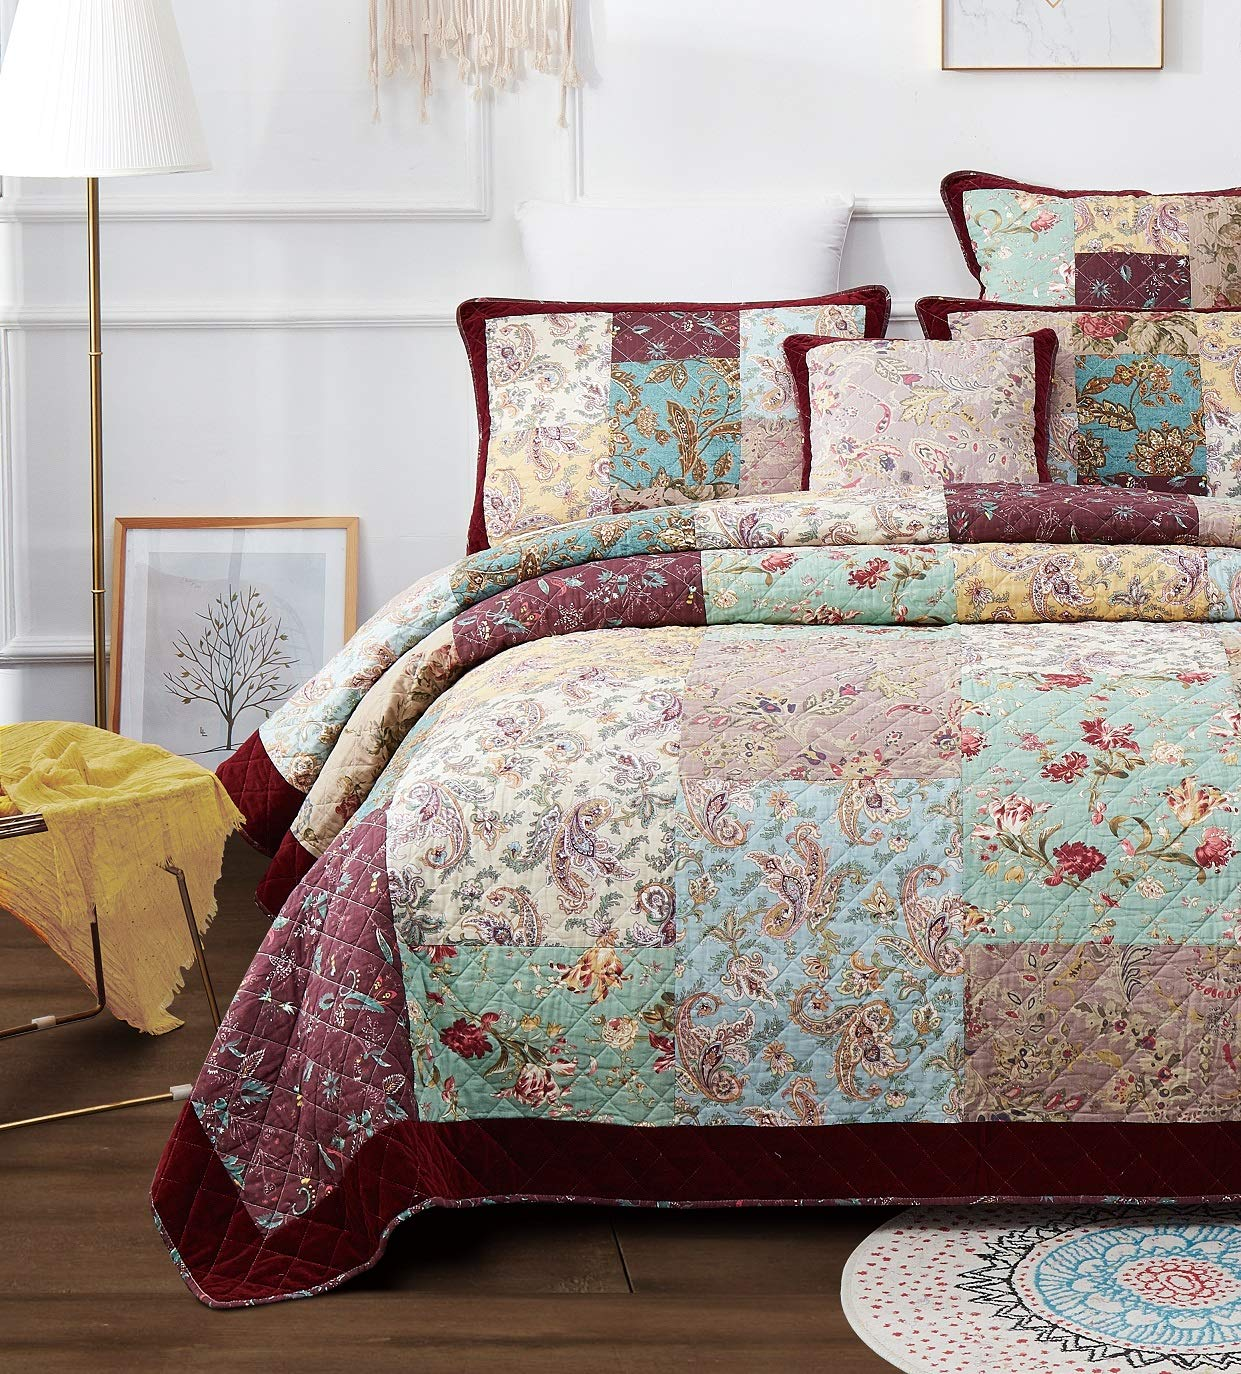 DaDa Bedding Bohemian Patchwork Bedspread - Cotton Burgundy Wine Velvety Trim - Vintage Floral Roses Paisley - Bright Vibrant Multi-Colorful Quilted Set - Cal King - 3-Pieces